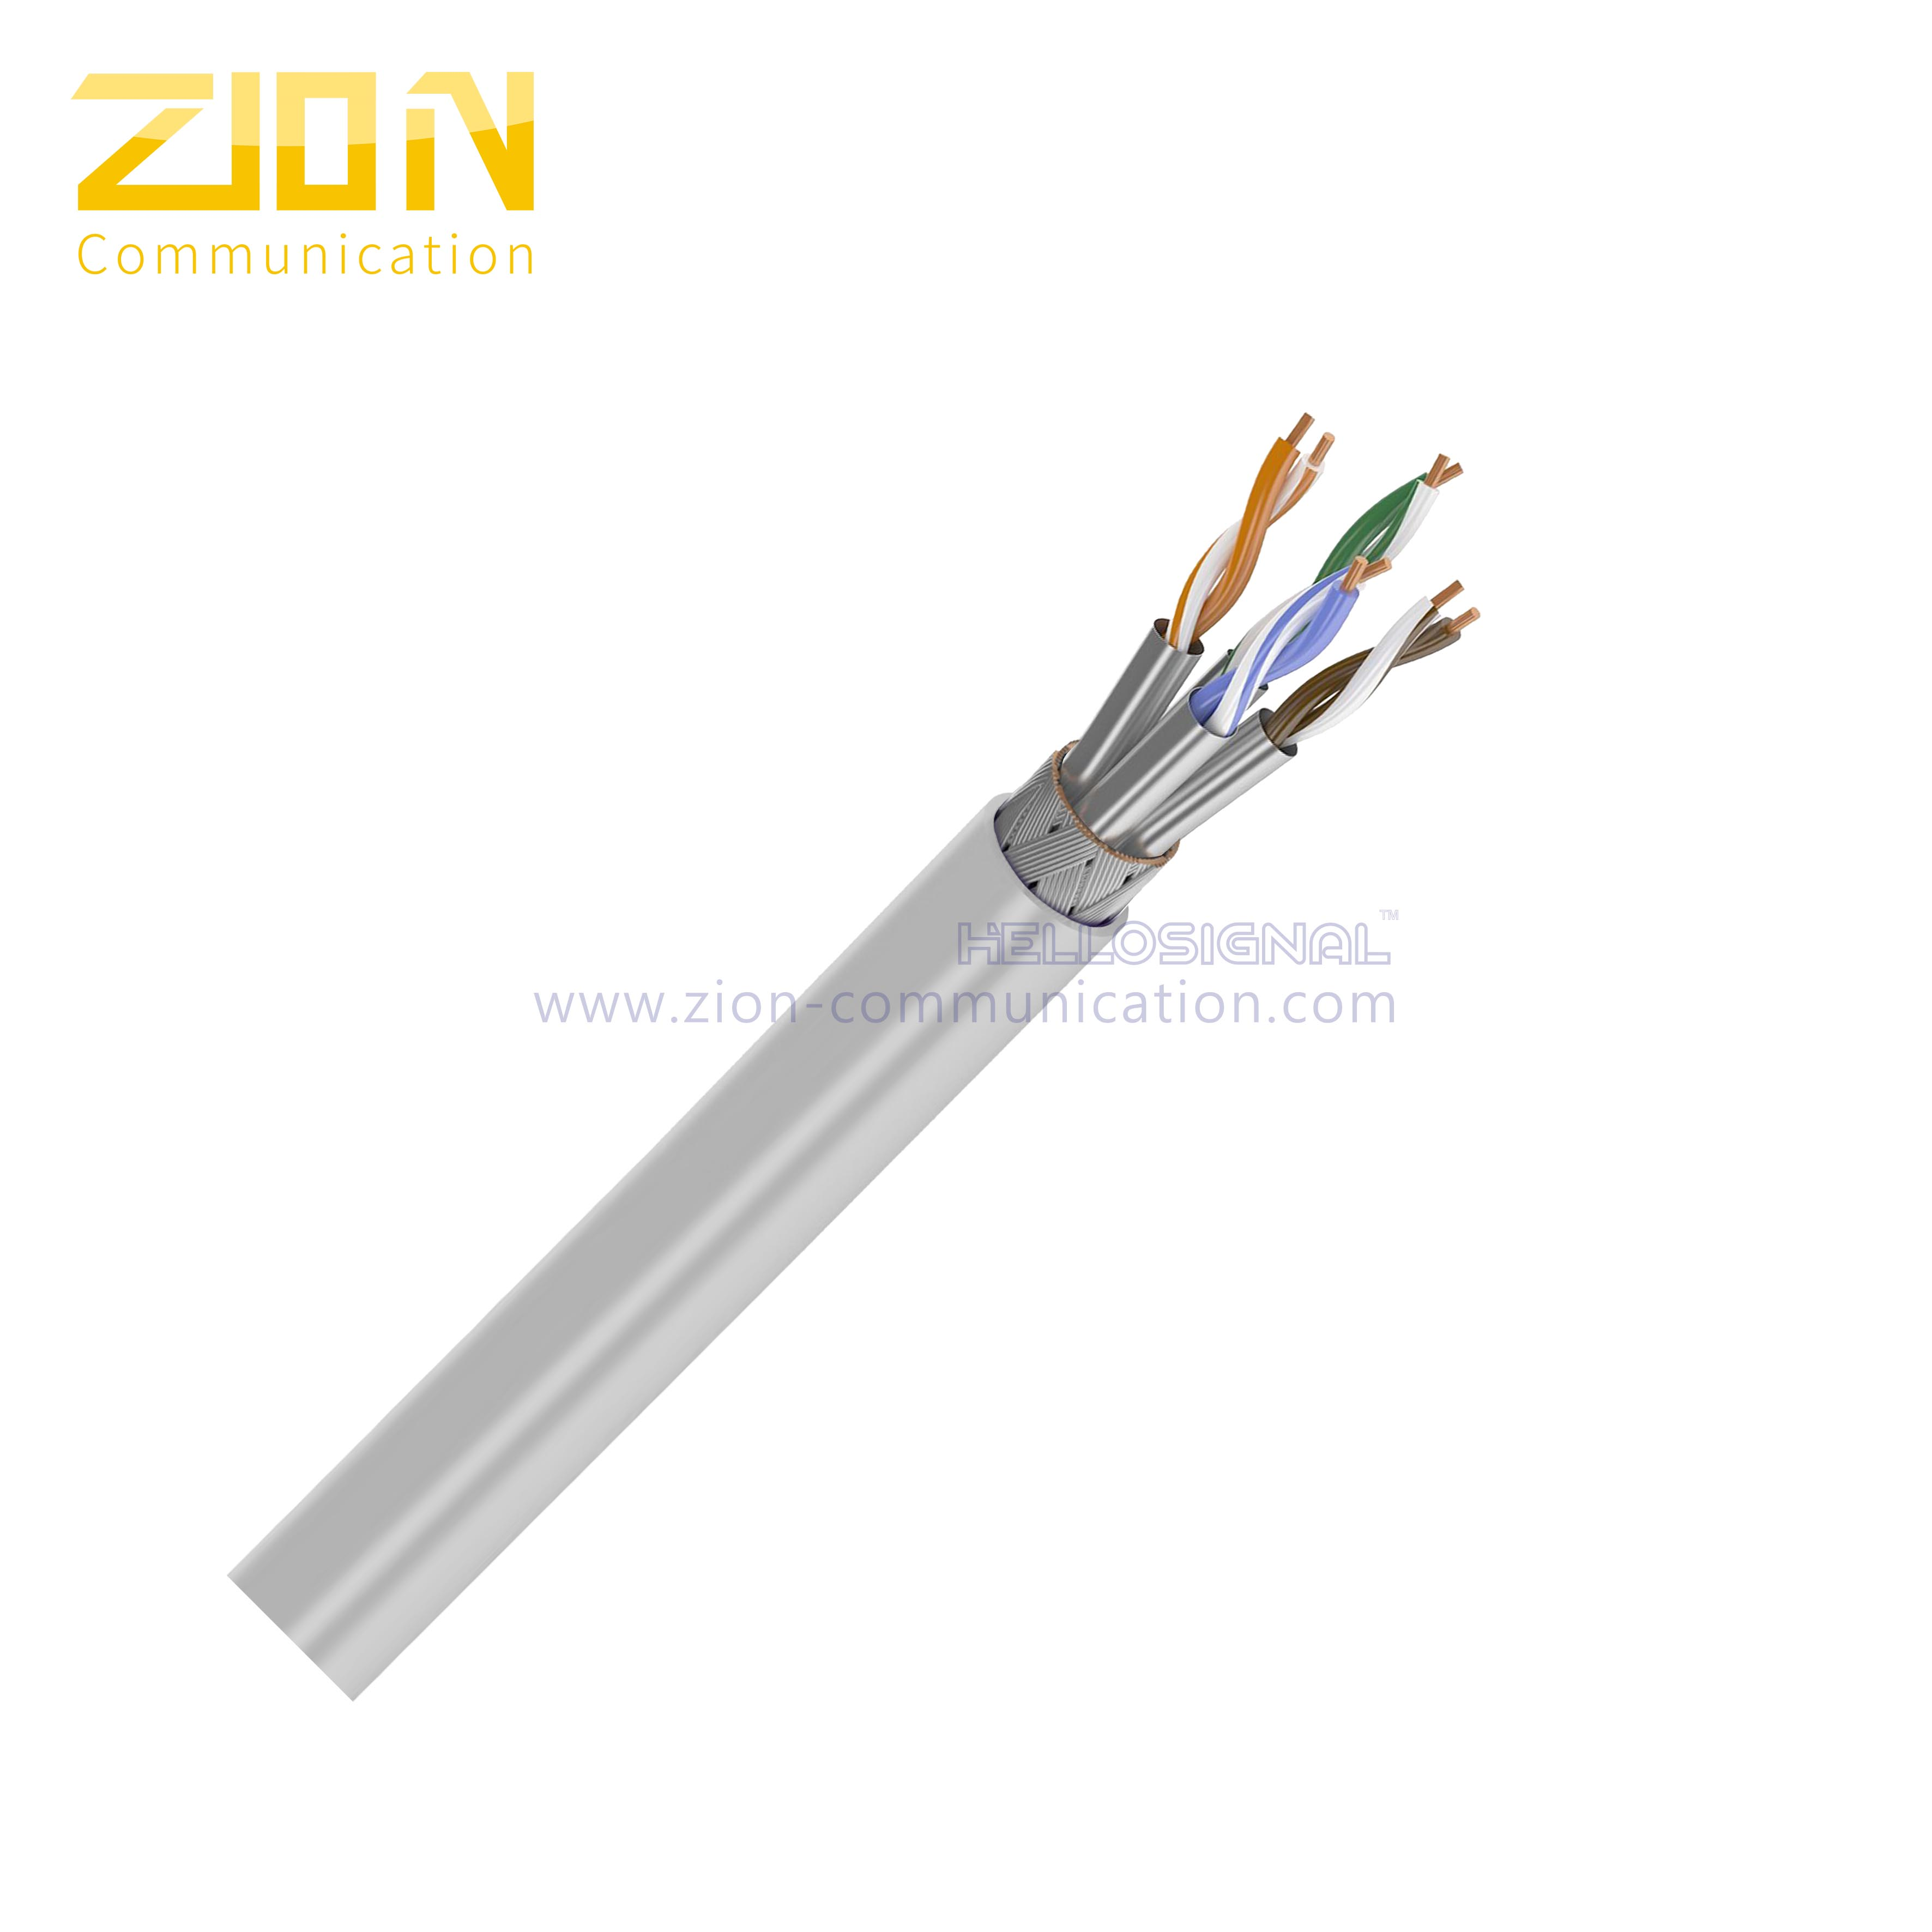 S/FTP CAT 7 Twisted Pair Installation Cable